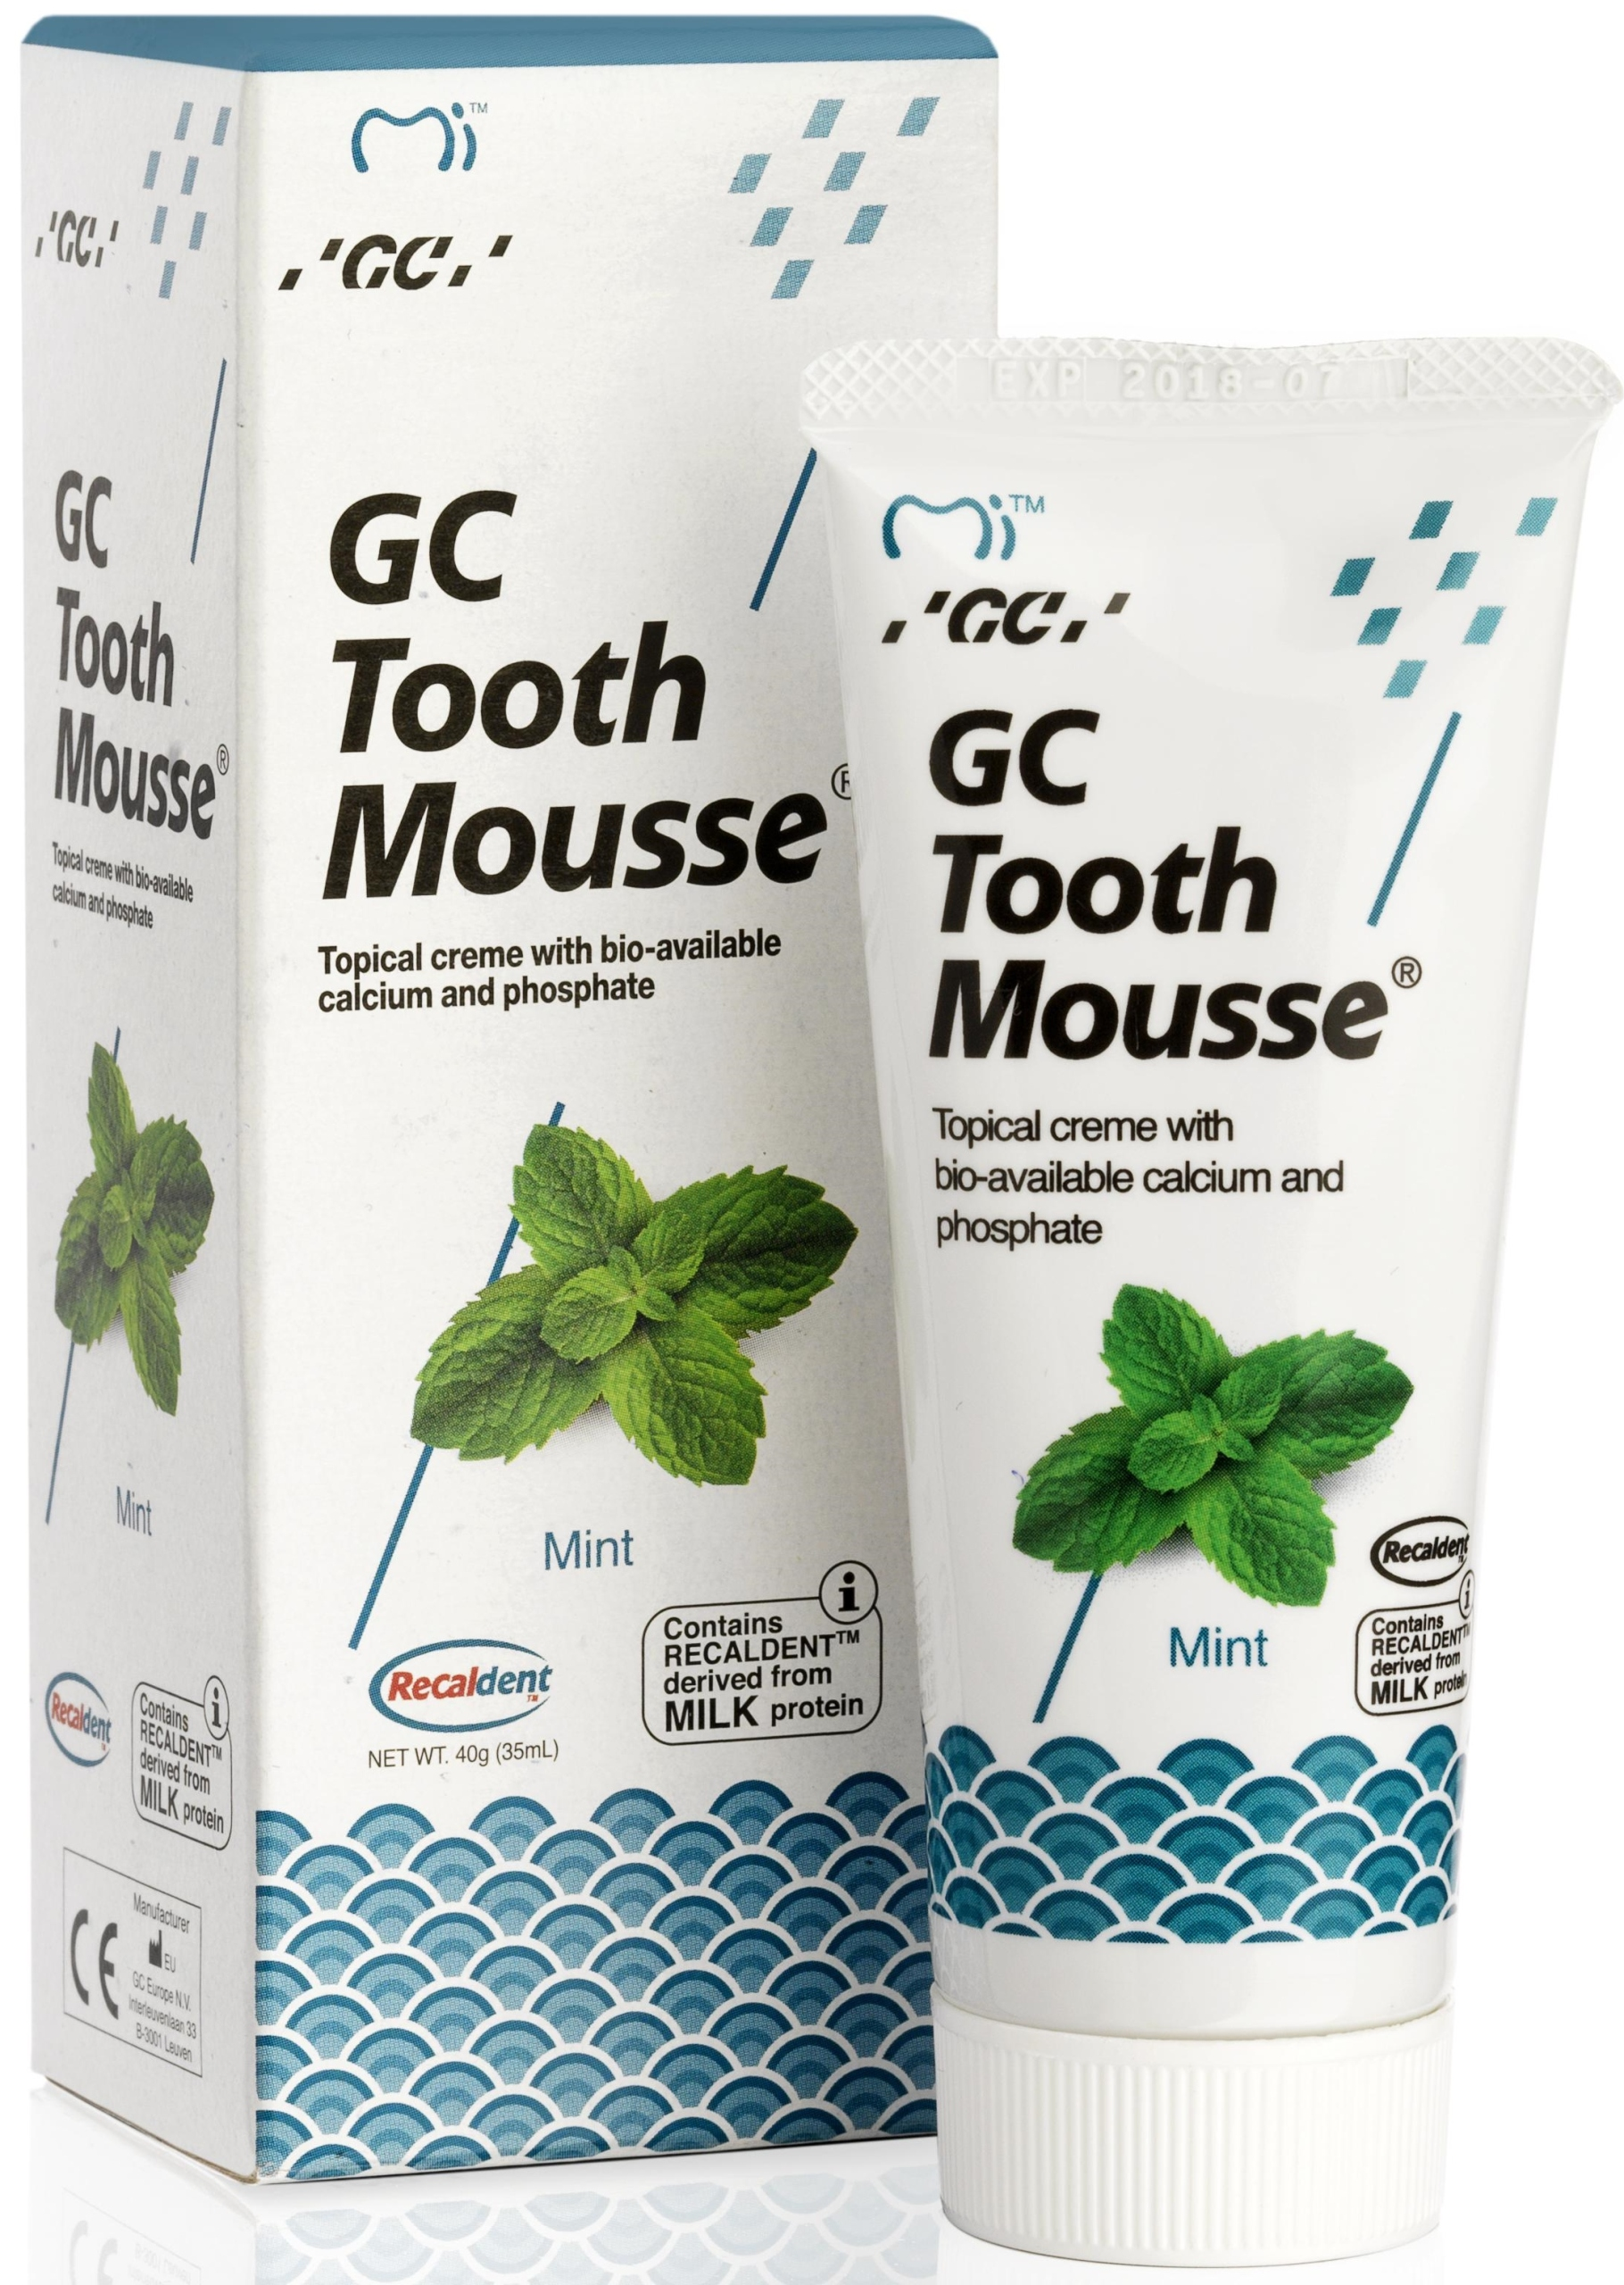 GC PASTA TOOTH MOUSSE 35мл MINT LIQUID ENLAY